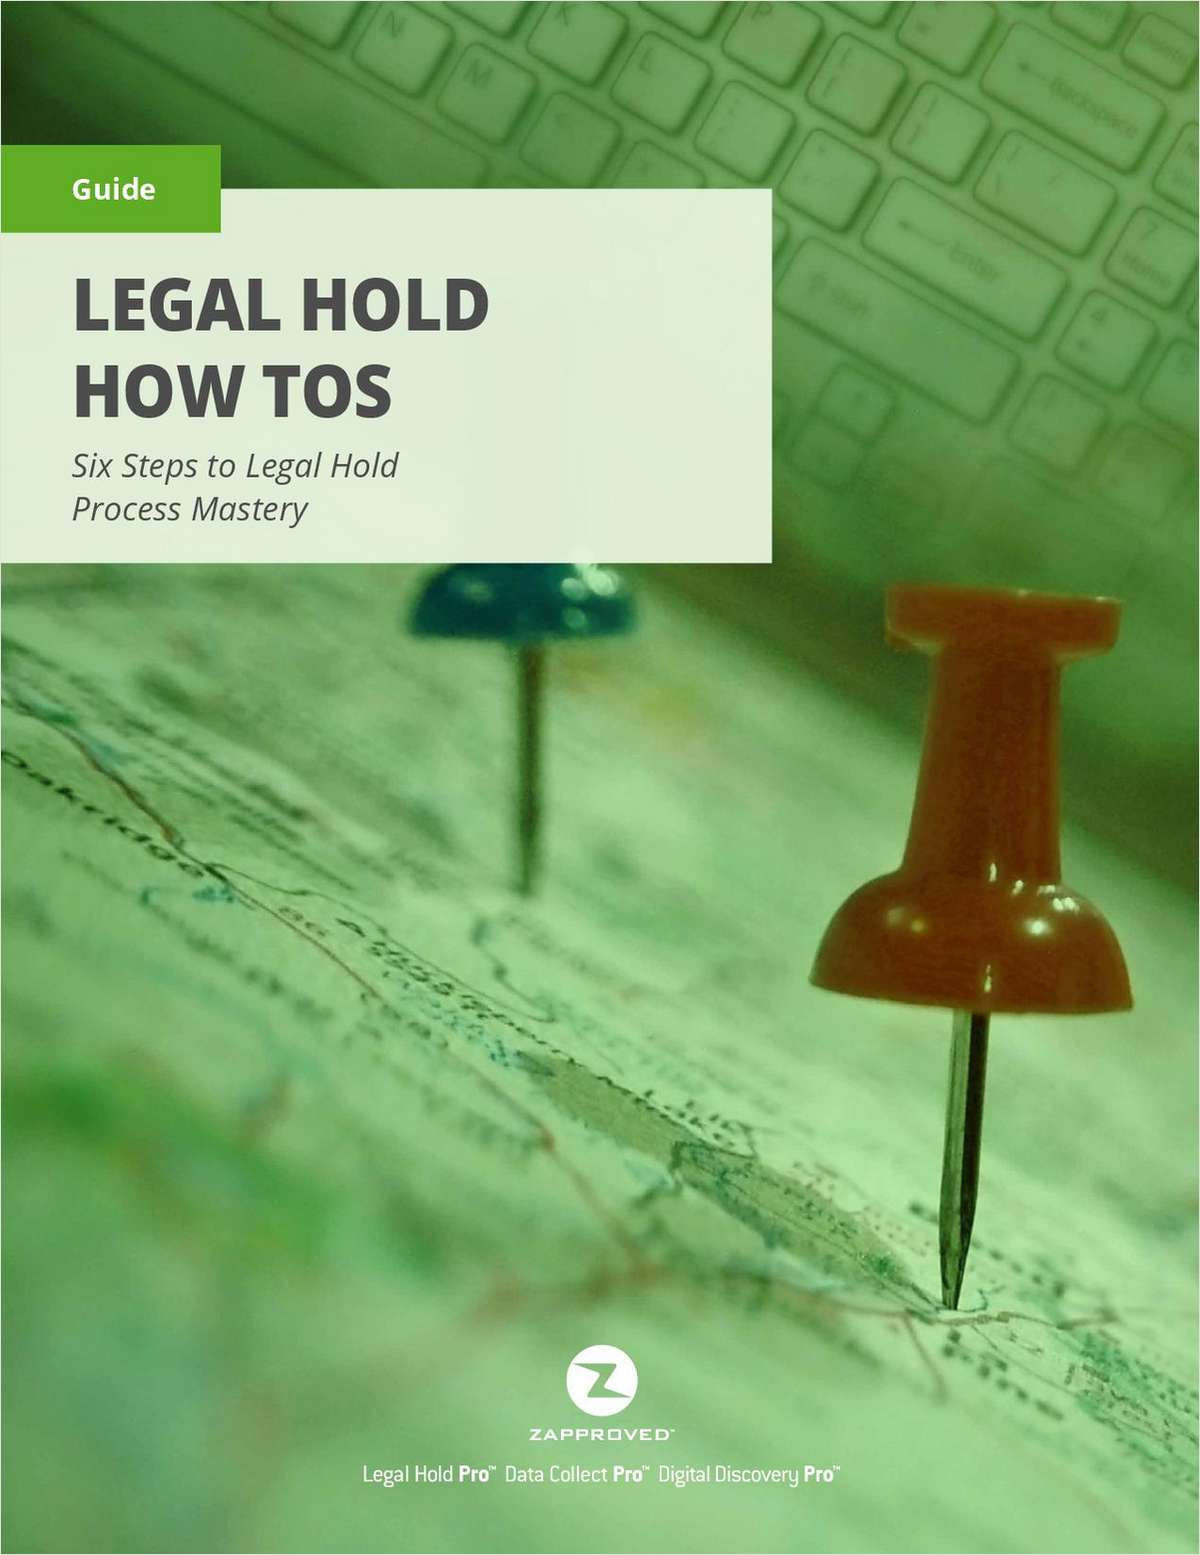 Legal Hold How Tos - 2017 Guide